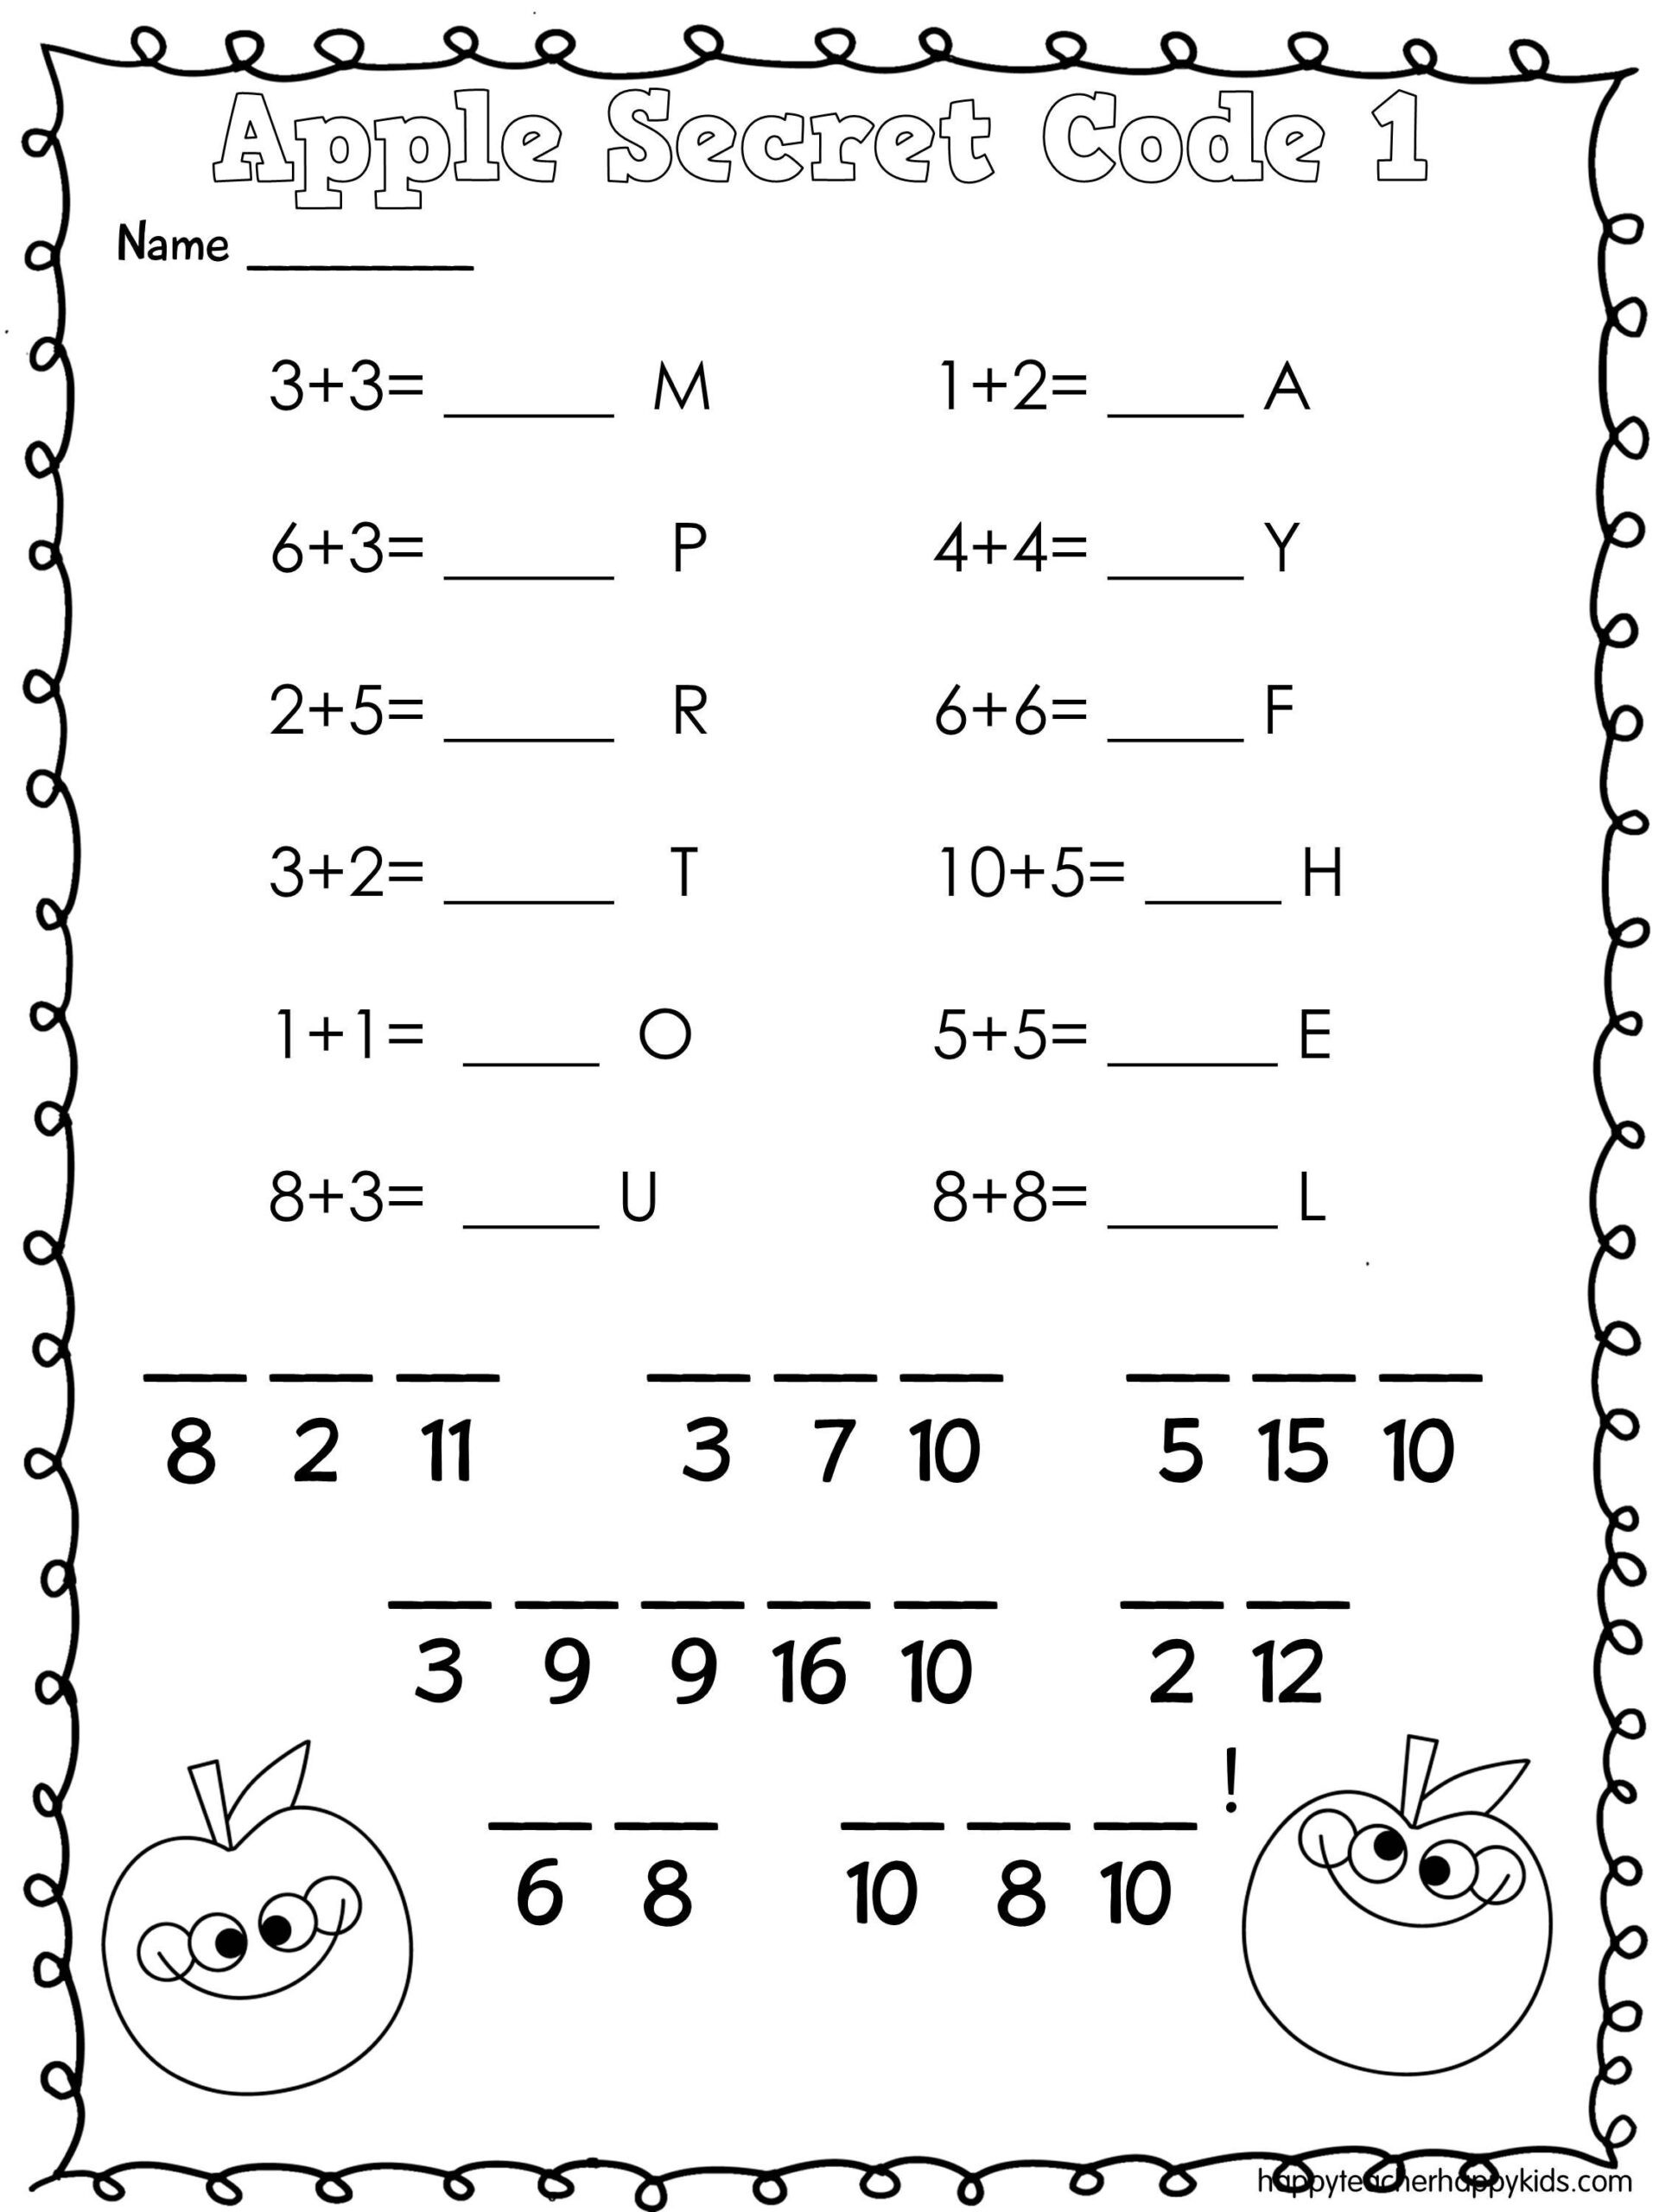 Free Printable Secret Code Worksheets Apple Math Secret Code Teaching for Kids Free Worksheets